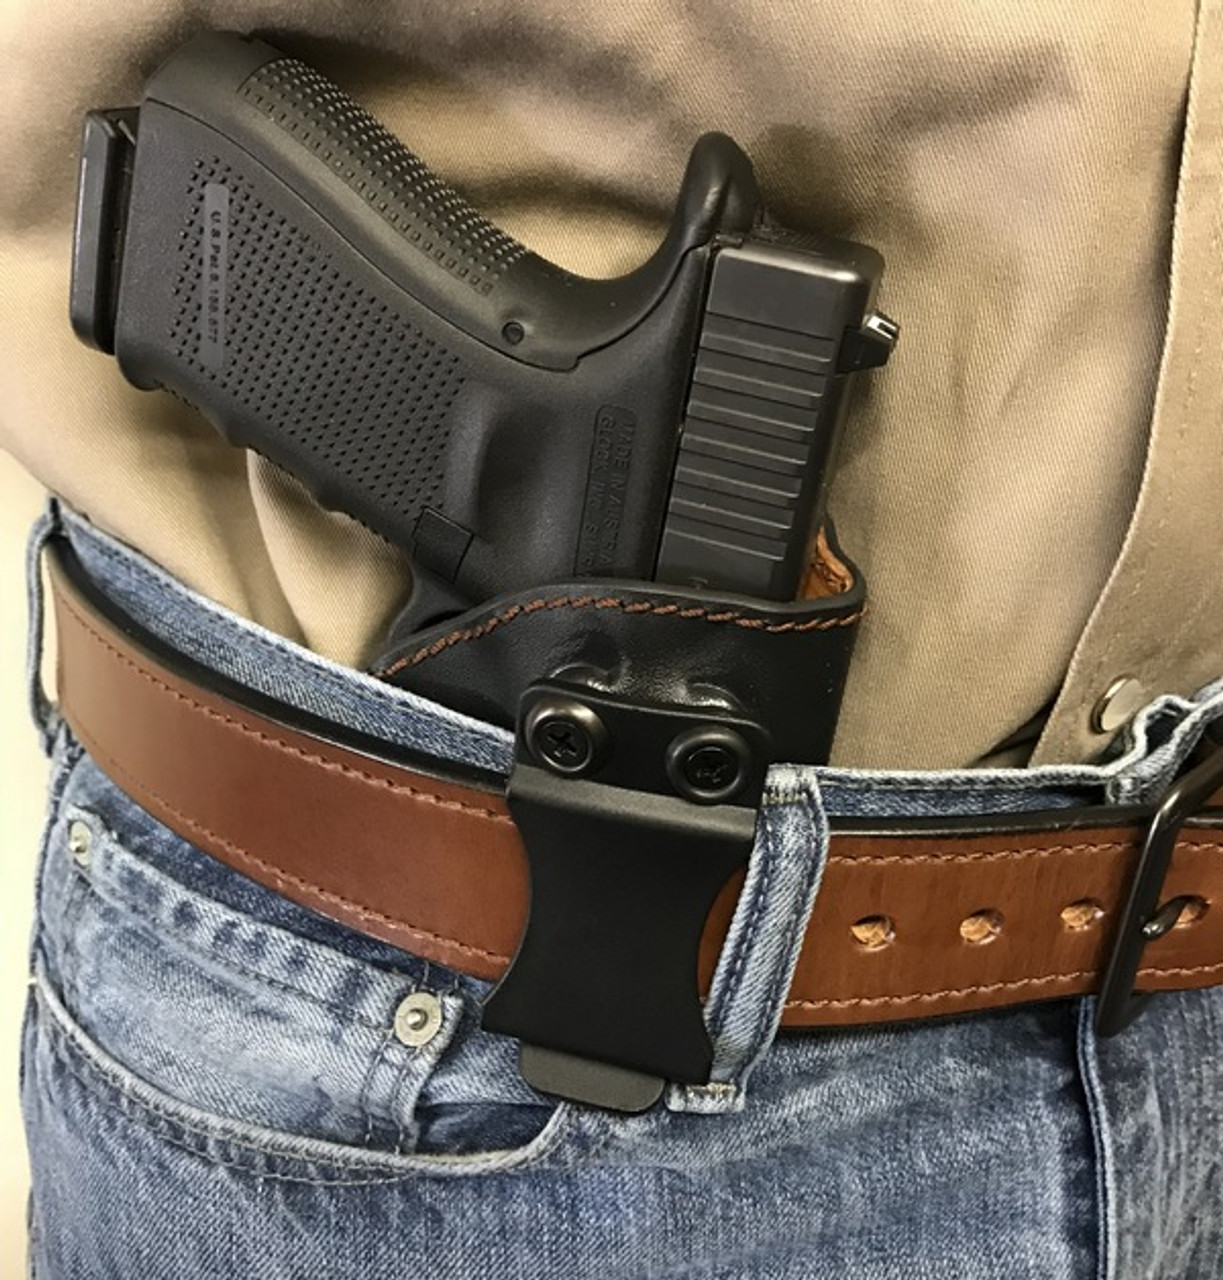 Deep Carry DC-2 Appendix Holster